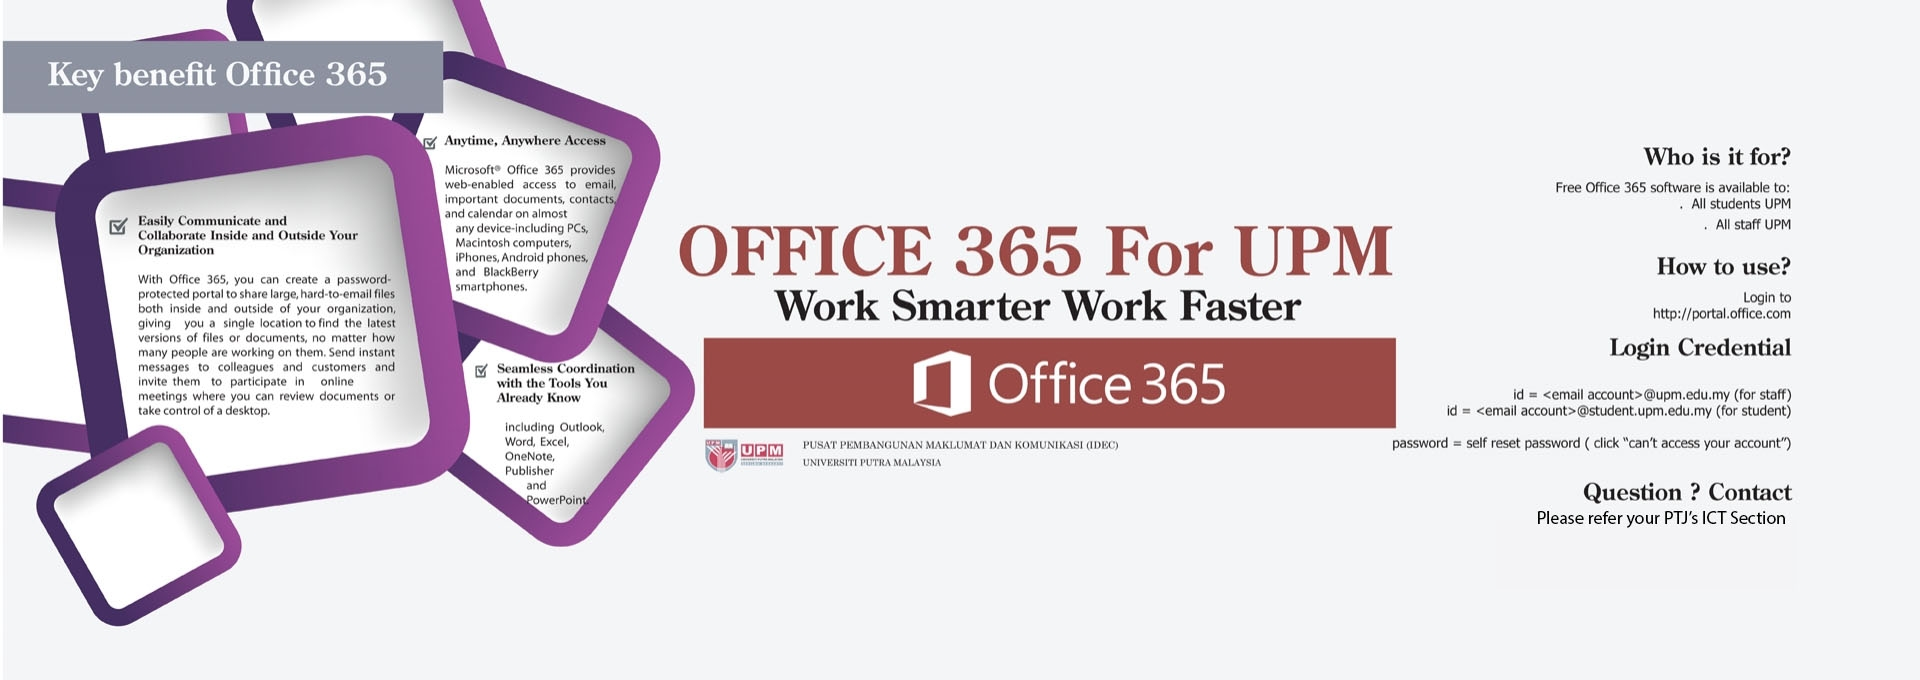 OFFICE 365 UPM